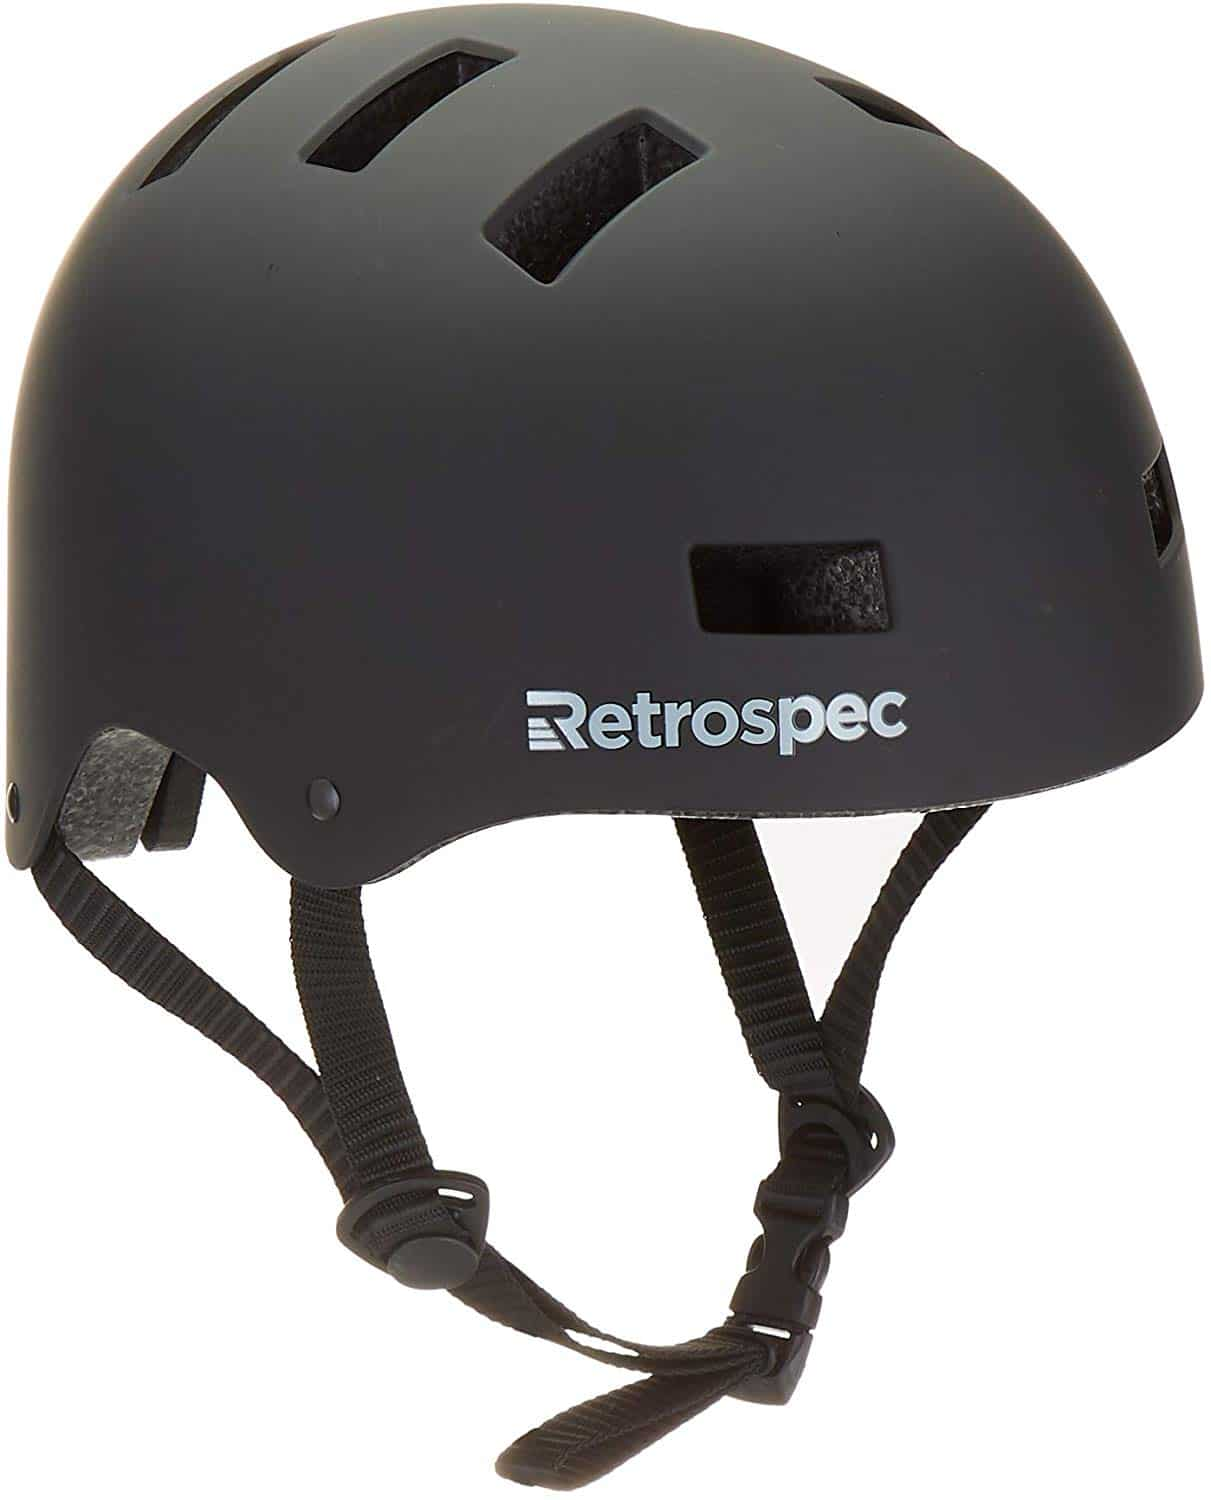 Retrospec CM-1 Commuter Helmet